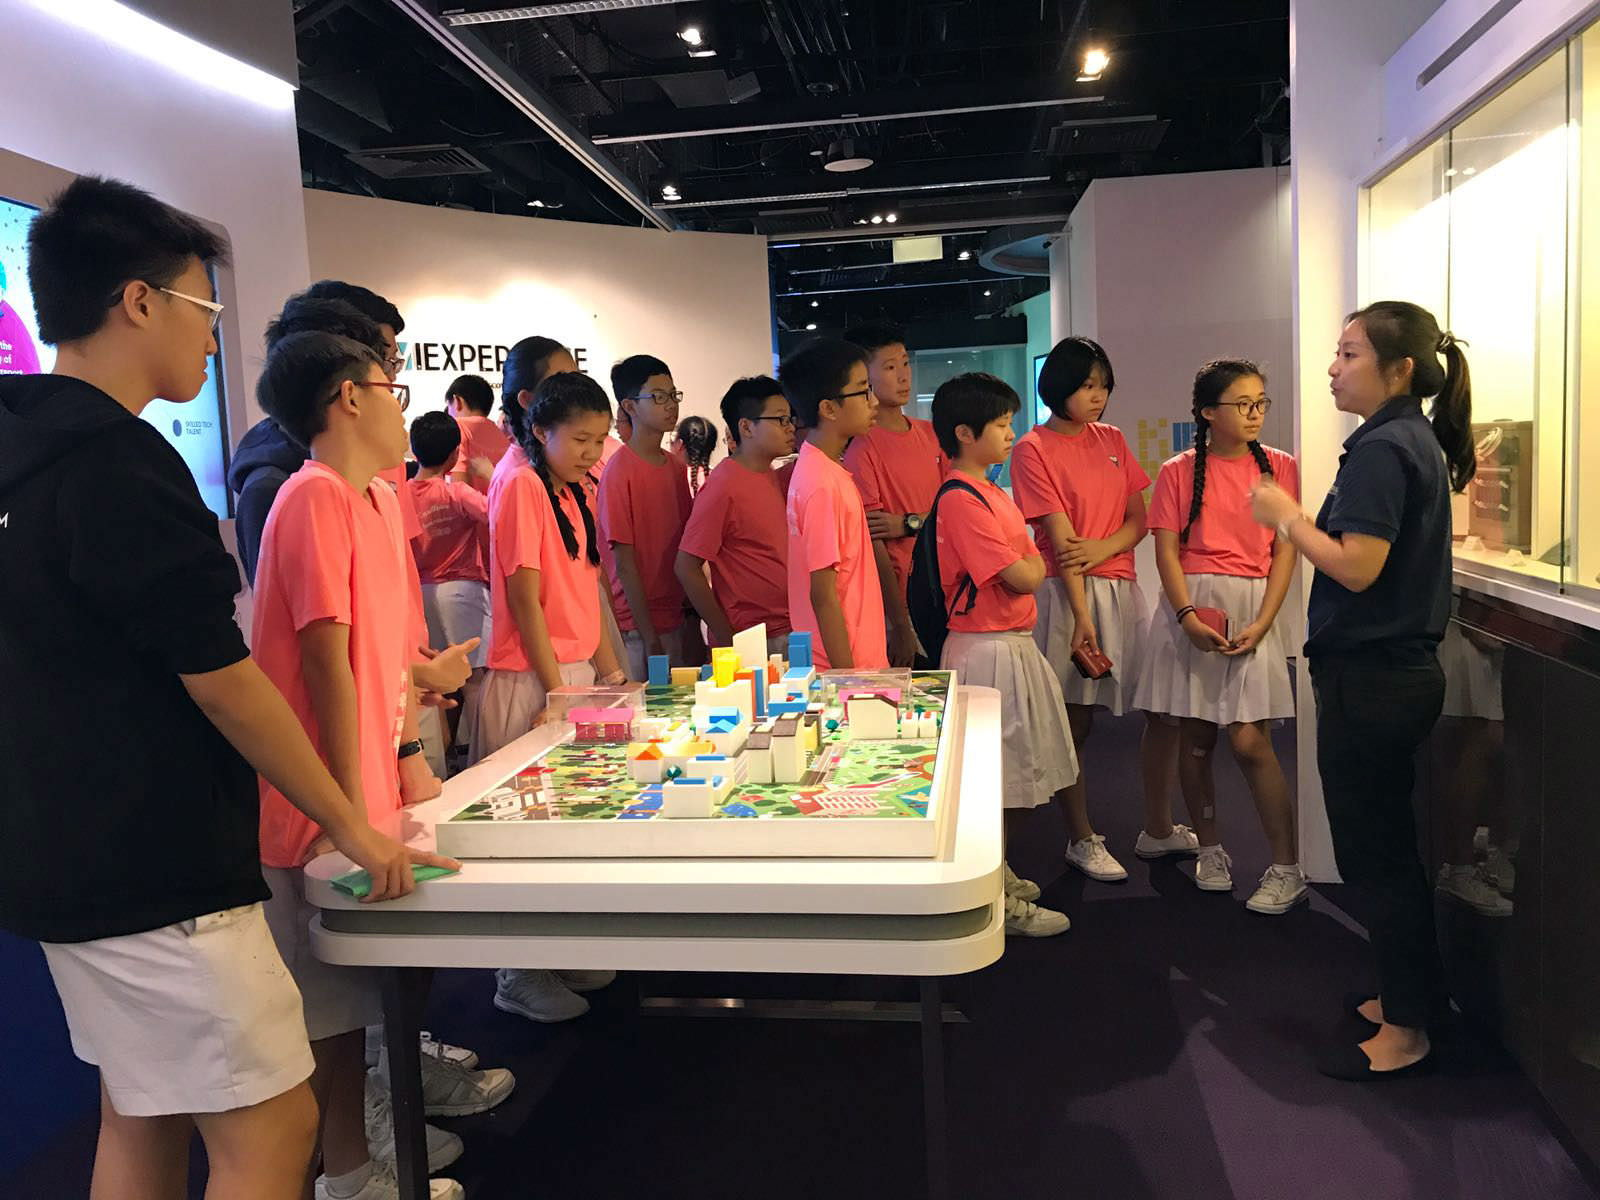 Students_on_Tech_Discovery_Journey_at_iExperience_Suntec.jpg